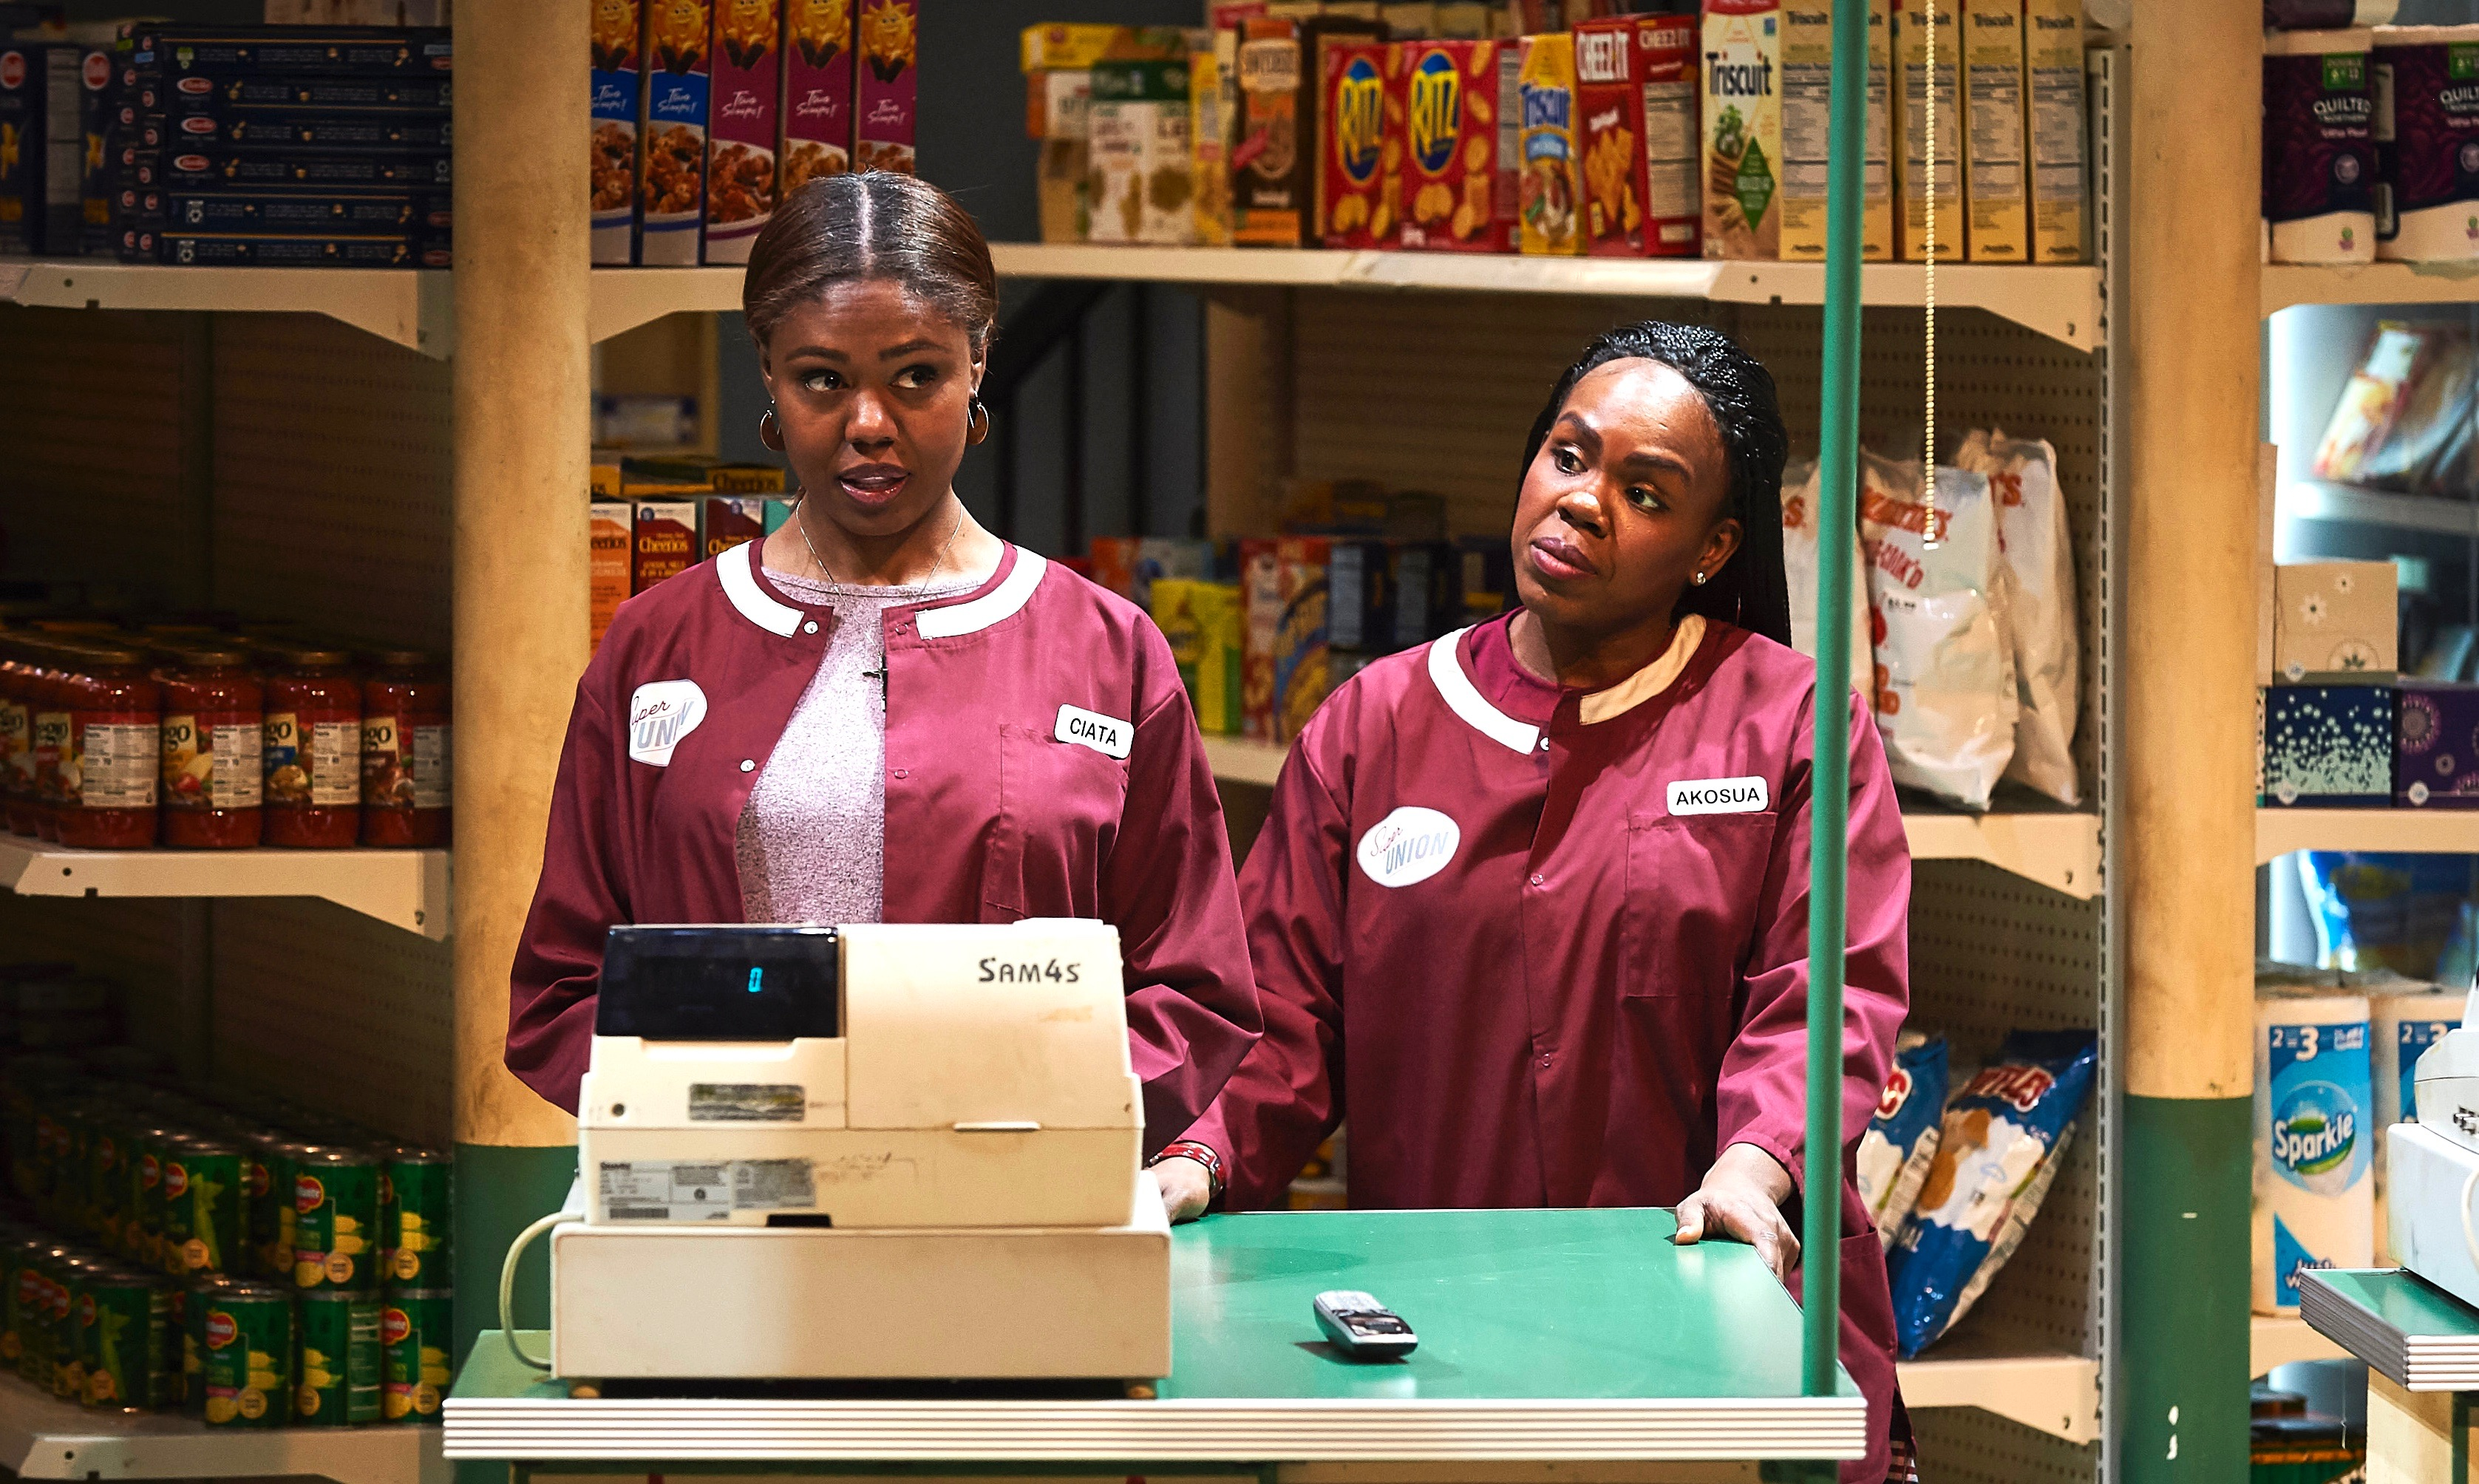 What'll you have? A better future, maybe? Ciata (Shamika Cotton, L) and Akosua (Ngoy Anyanwu) check out the prospects in 'Citizens Market.'